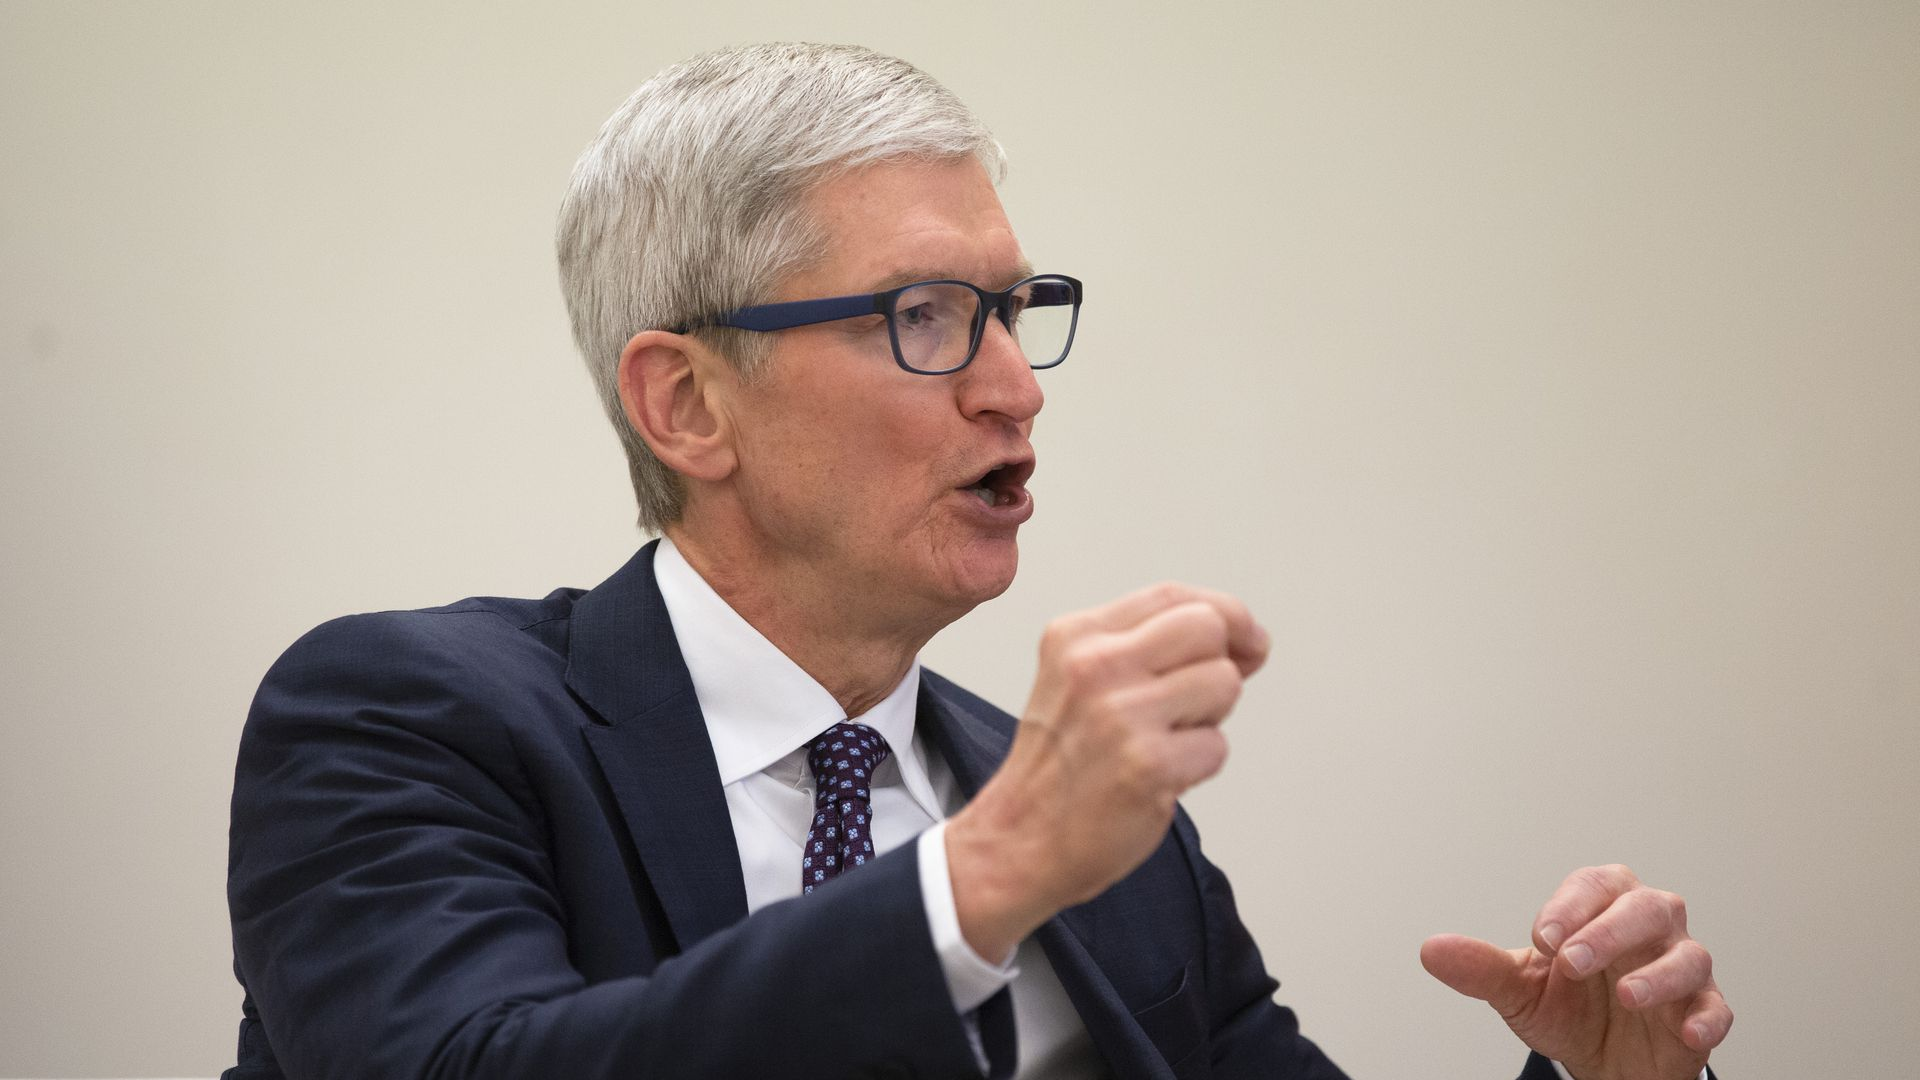 Tim Cook gesticulates during a speech.